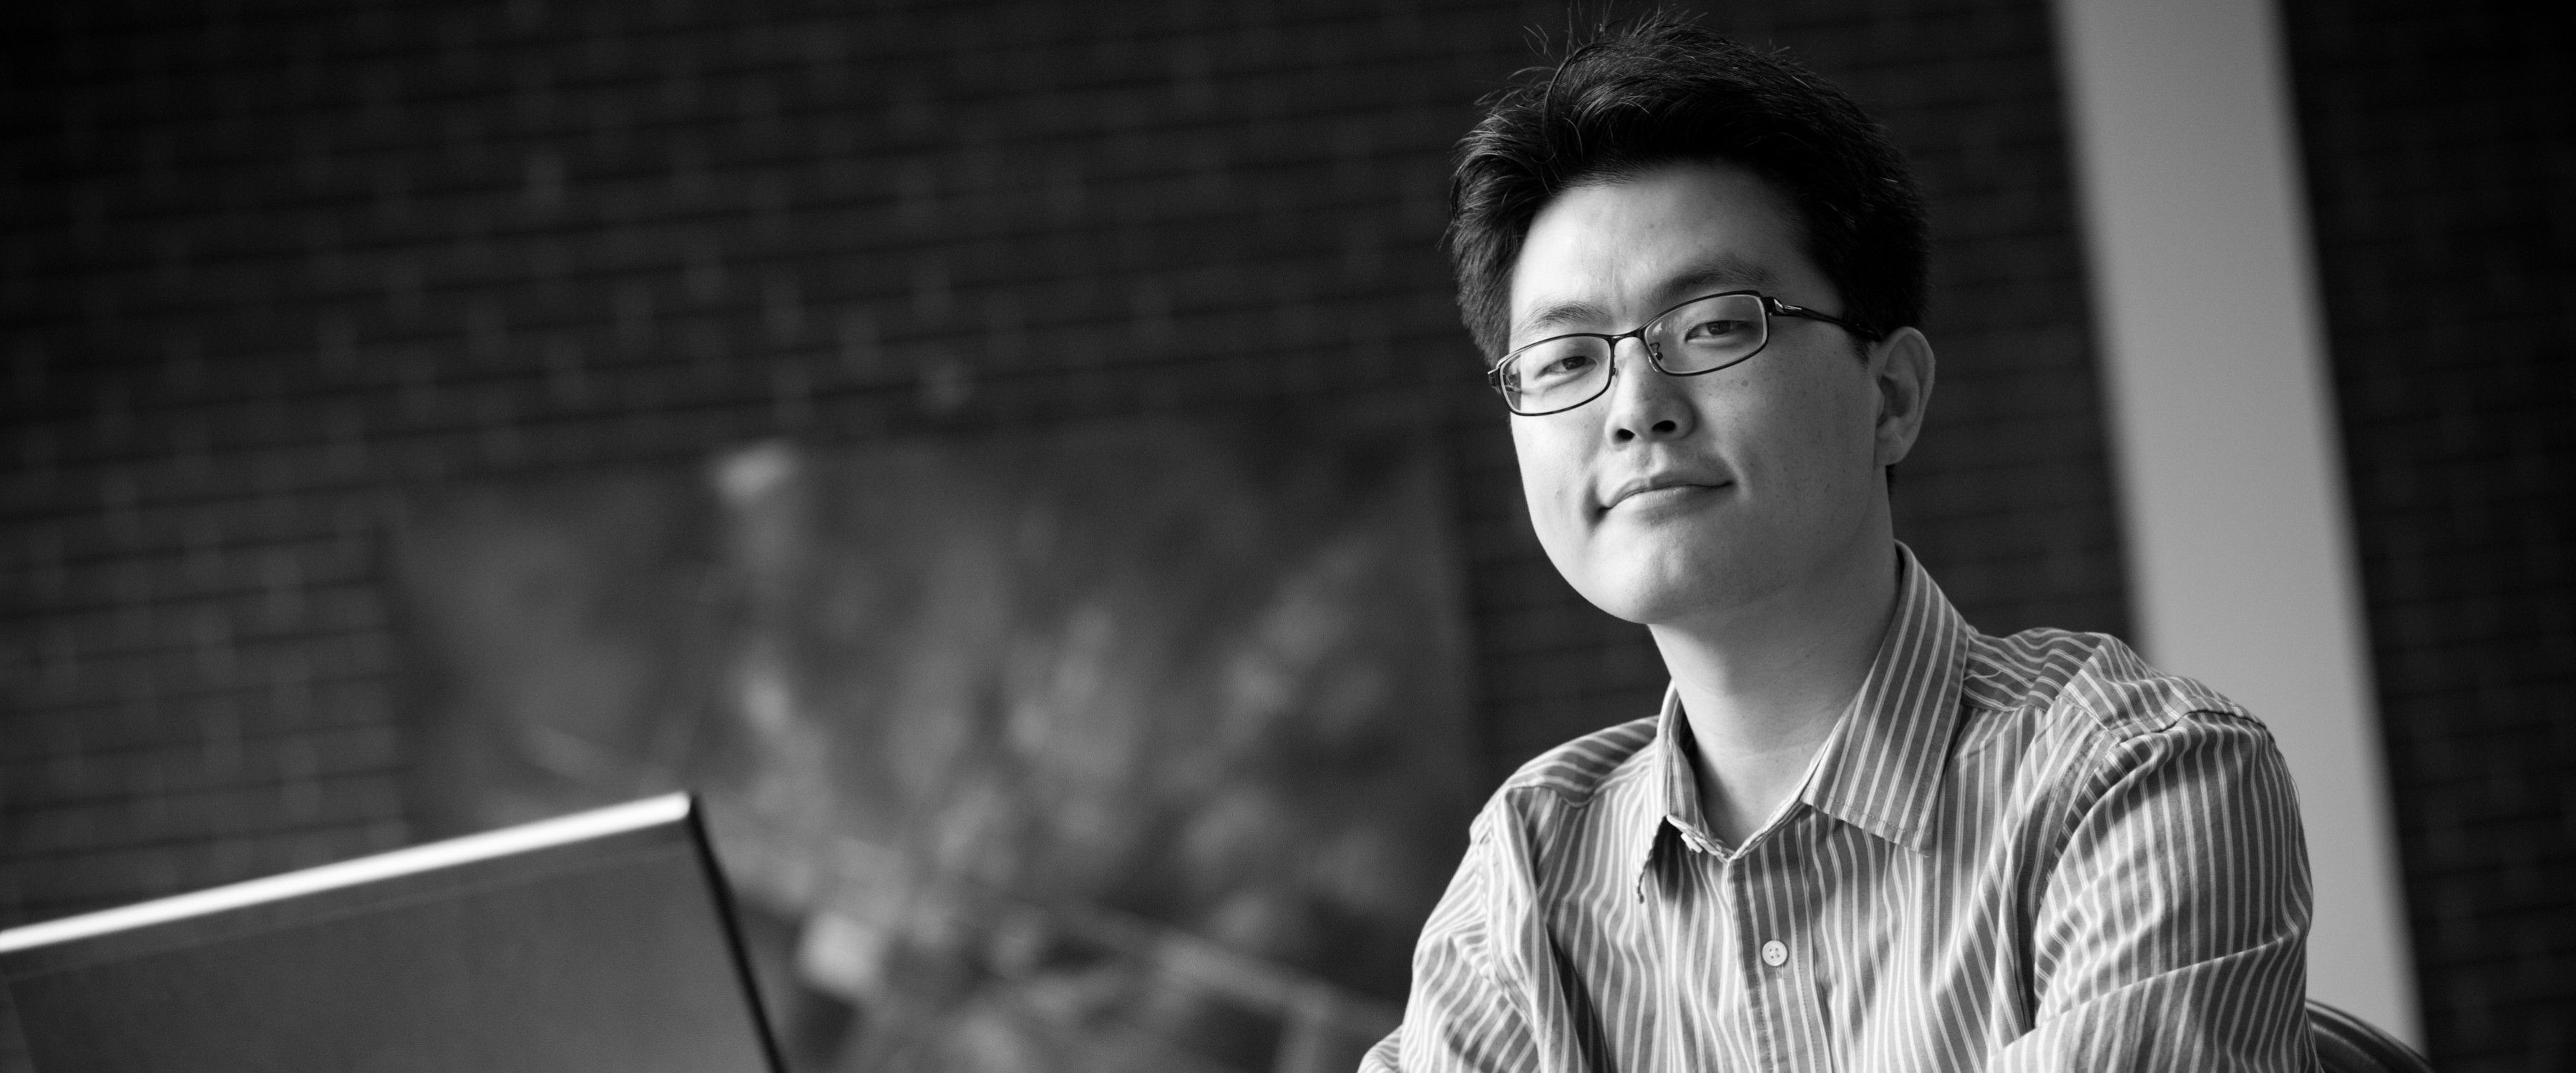 black and white image of In Heok Lee, Ph.D.